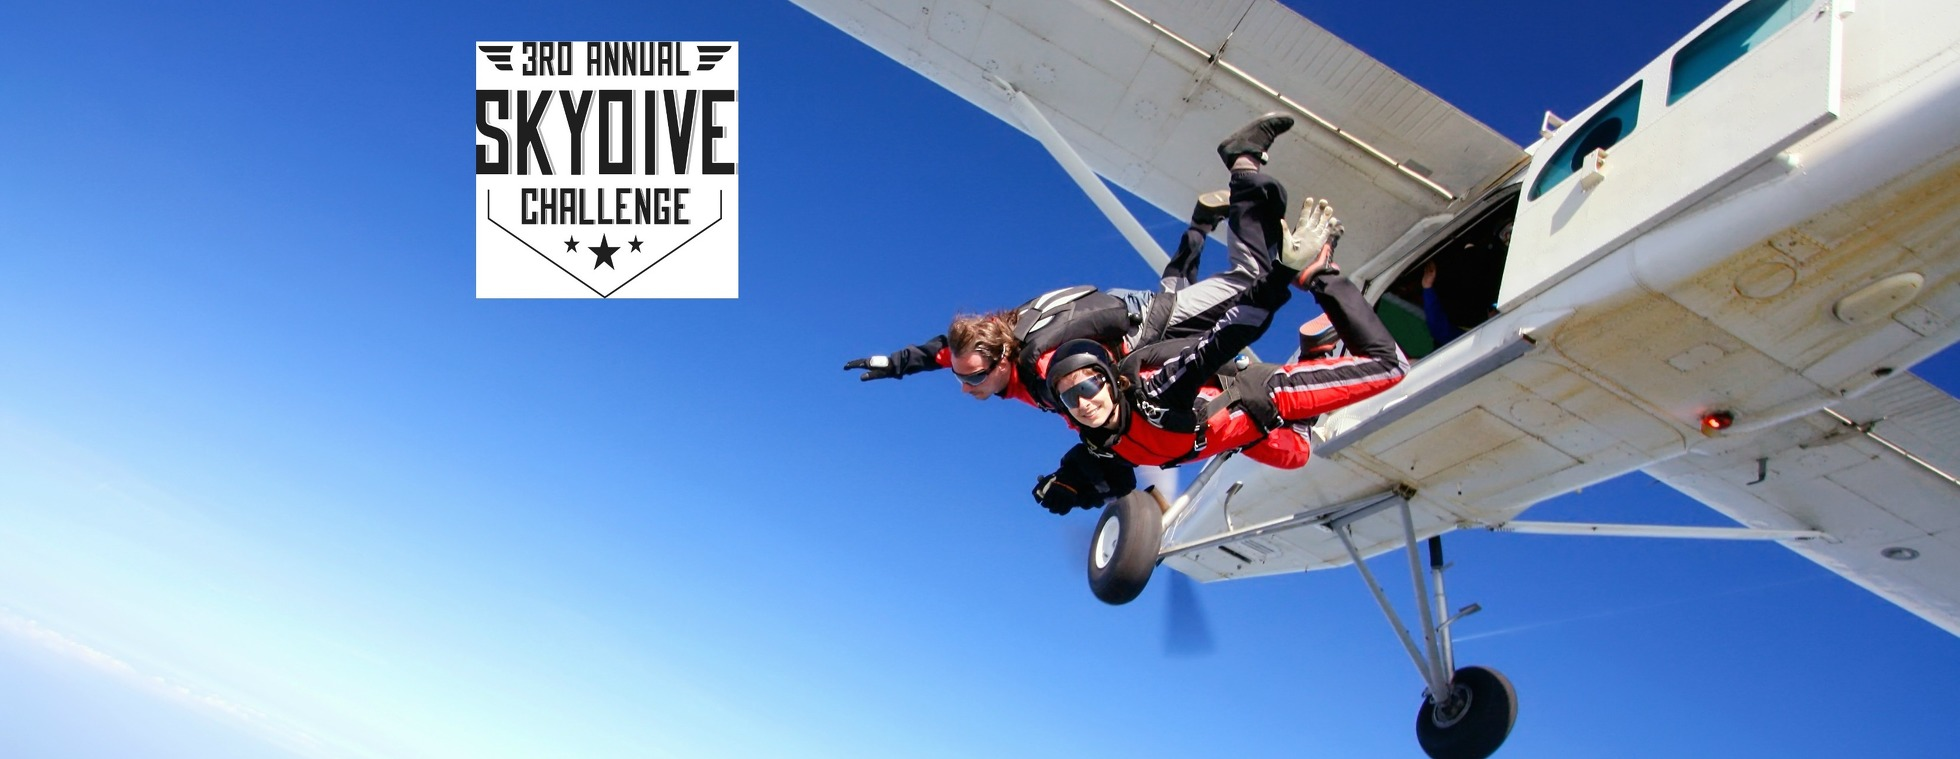 2018 Skydive Challenge to benefit Heidrea for Heroes